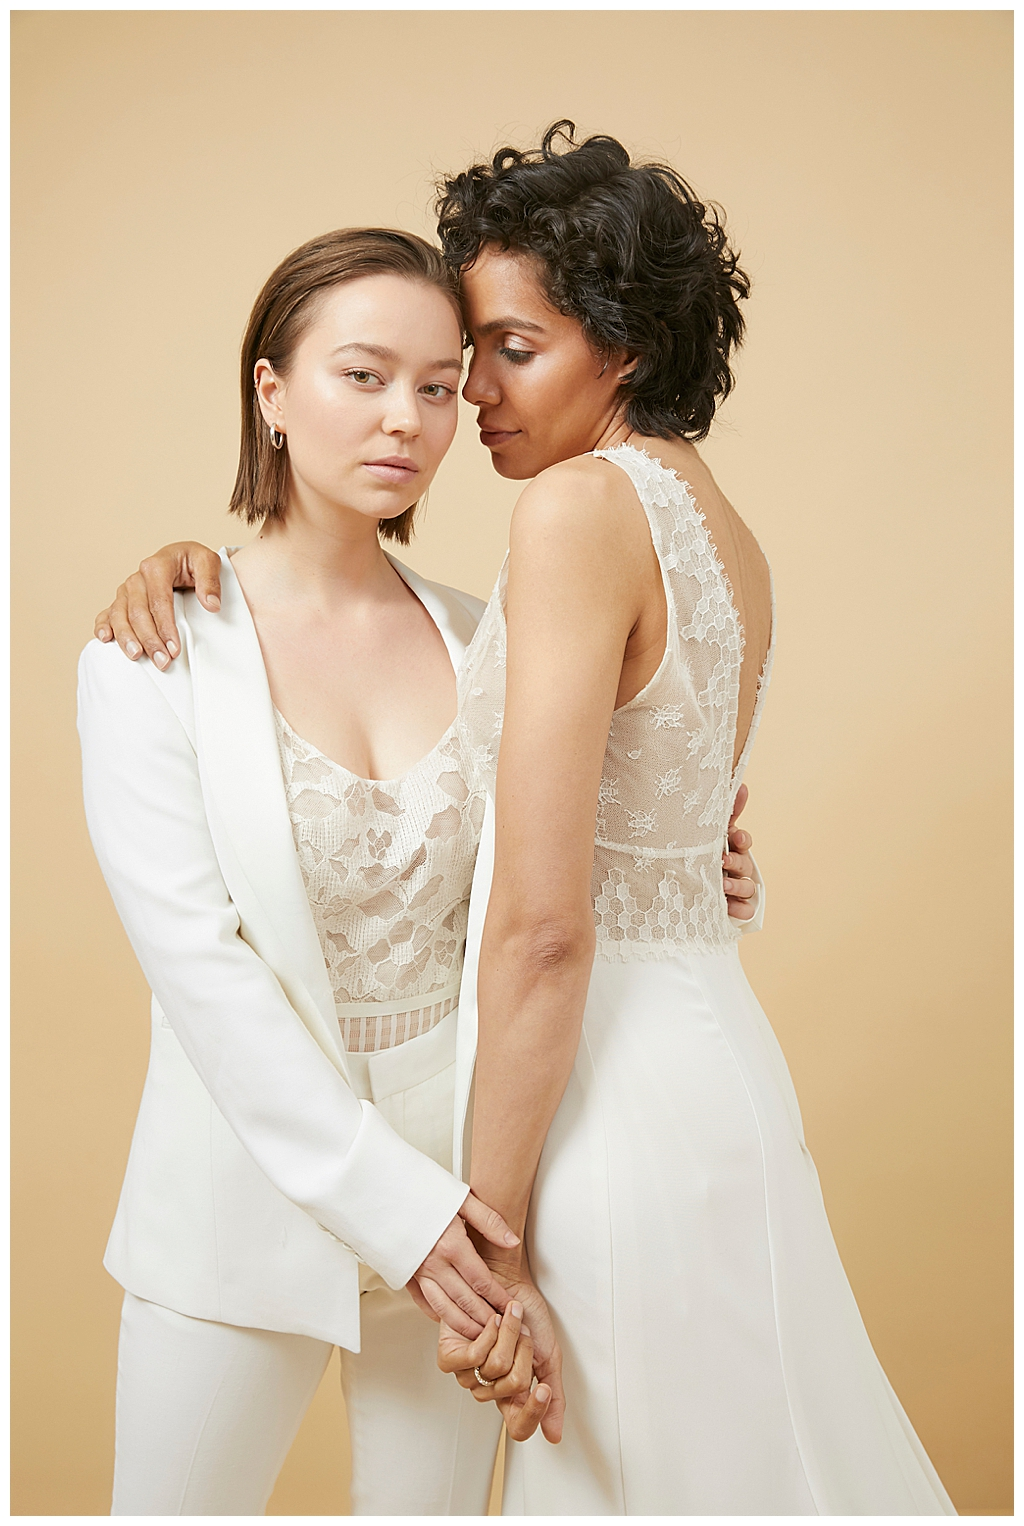 lgbtq-wedding-fashion-editorial-9